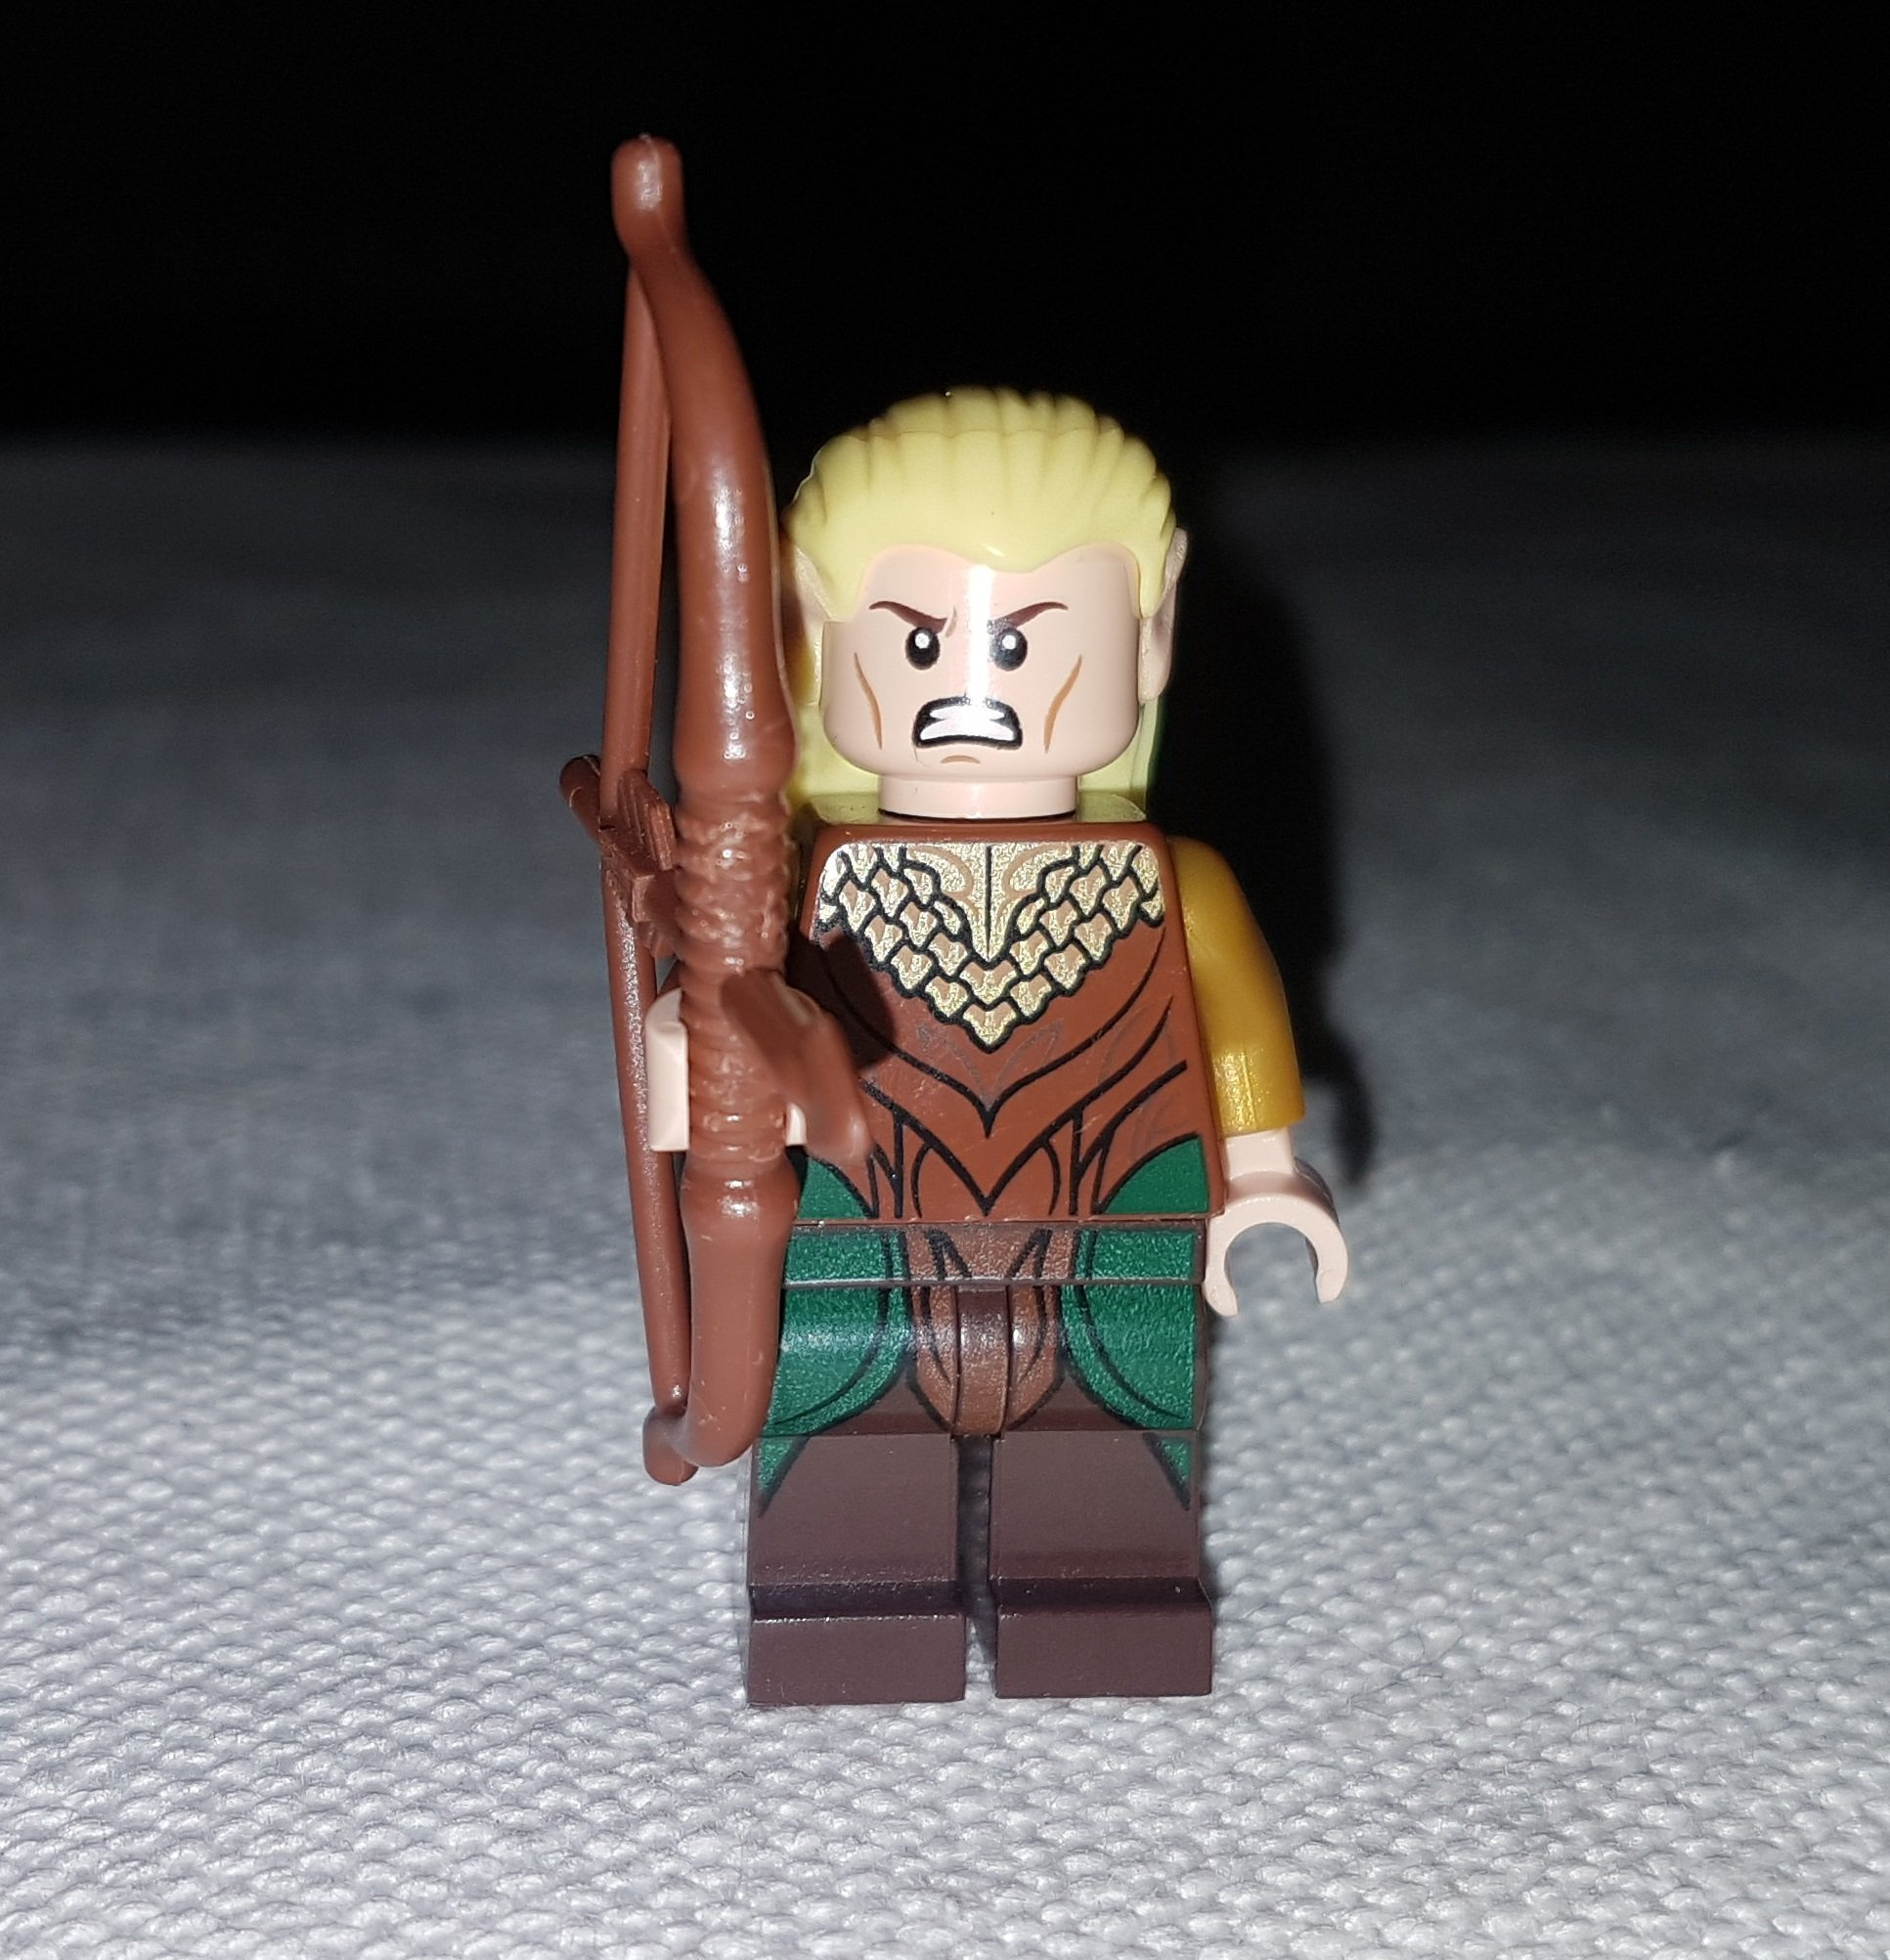 Lego minifigur - Lord of the Rings Minifigure - Legolas